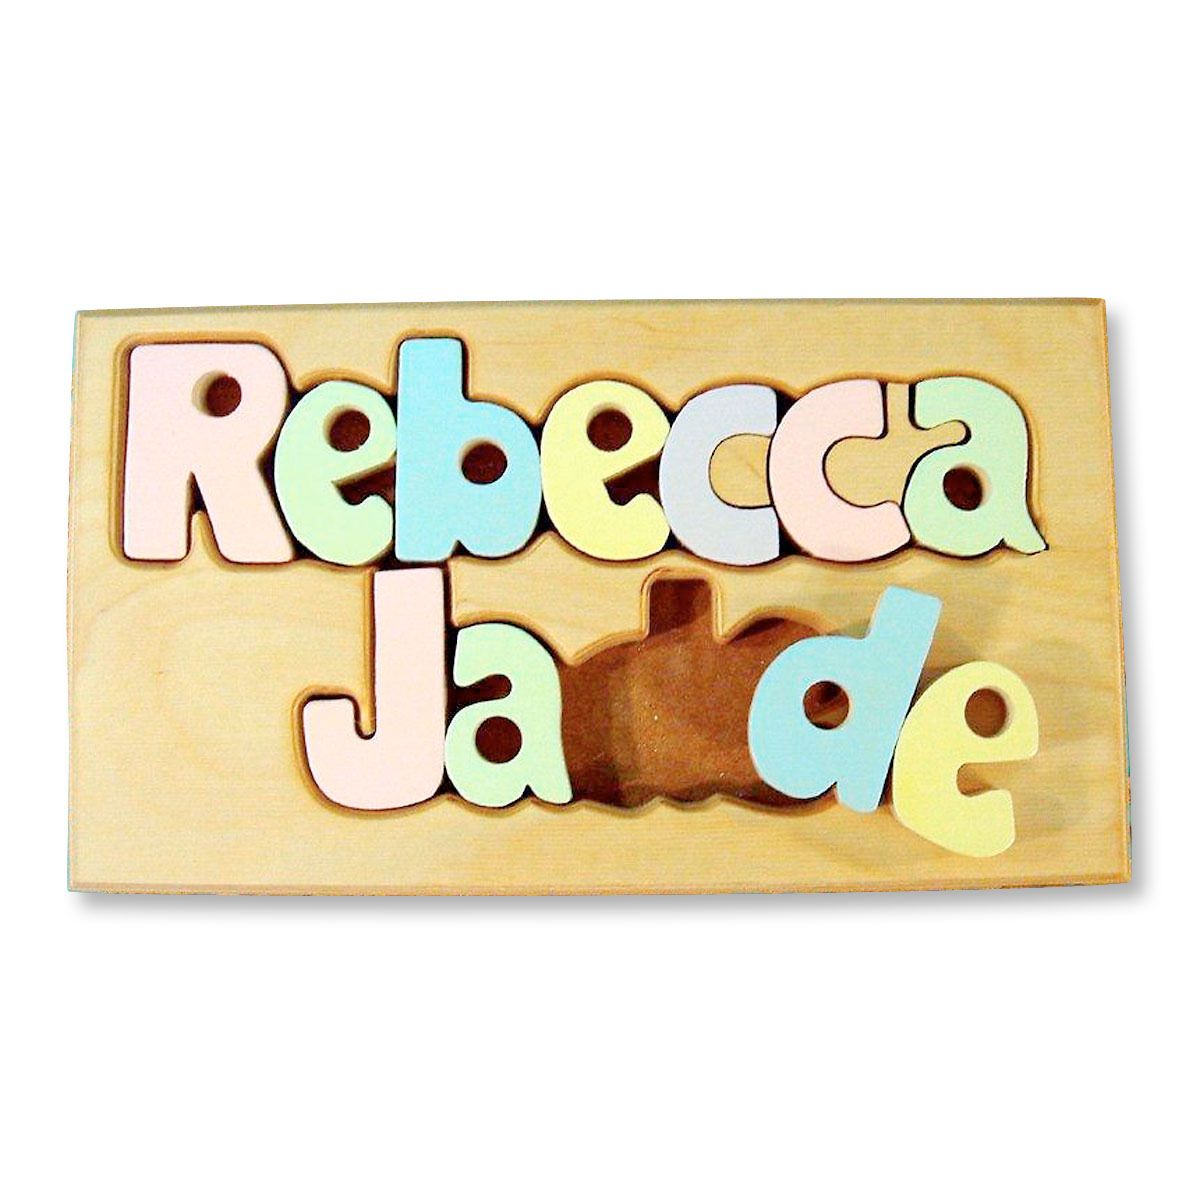 Personalized Double Name Board 9-12 Letters - Pastel